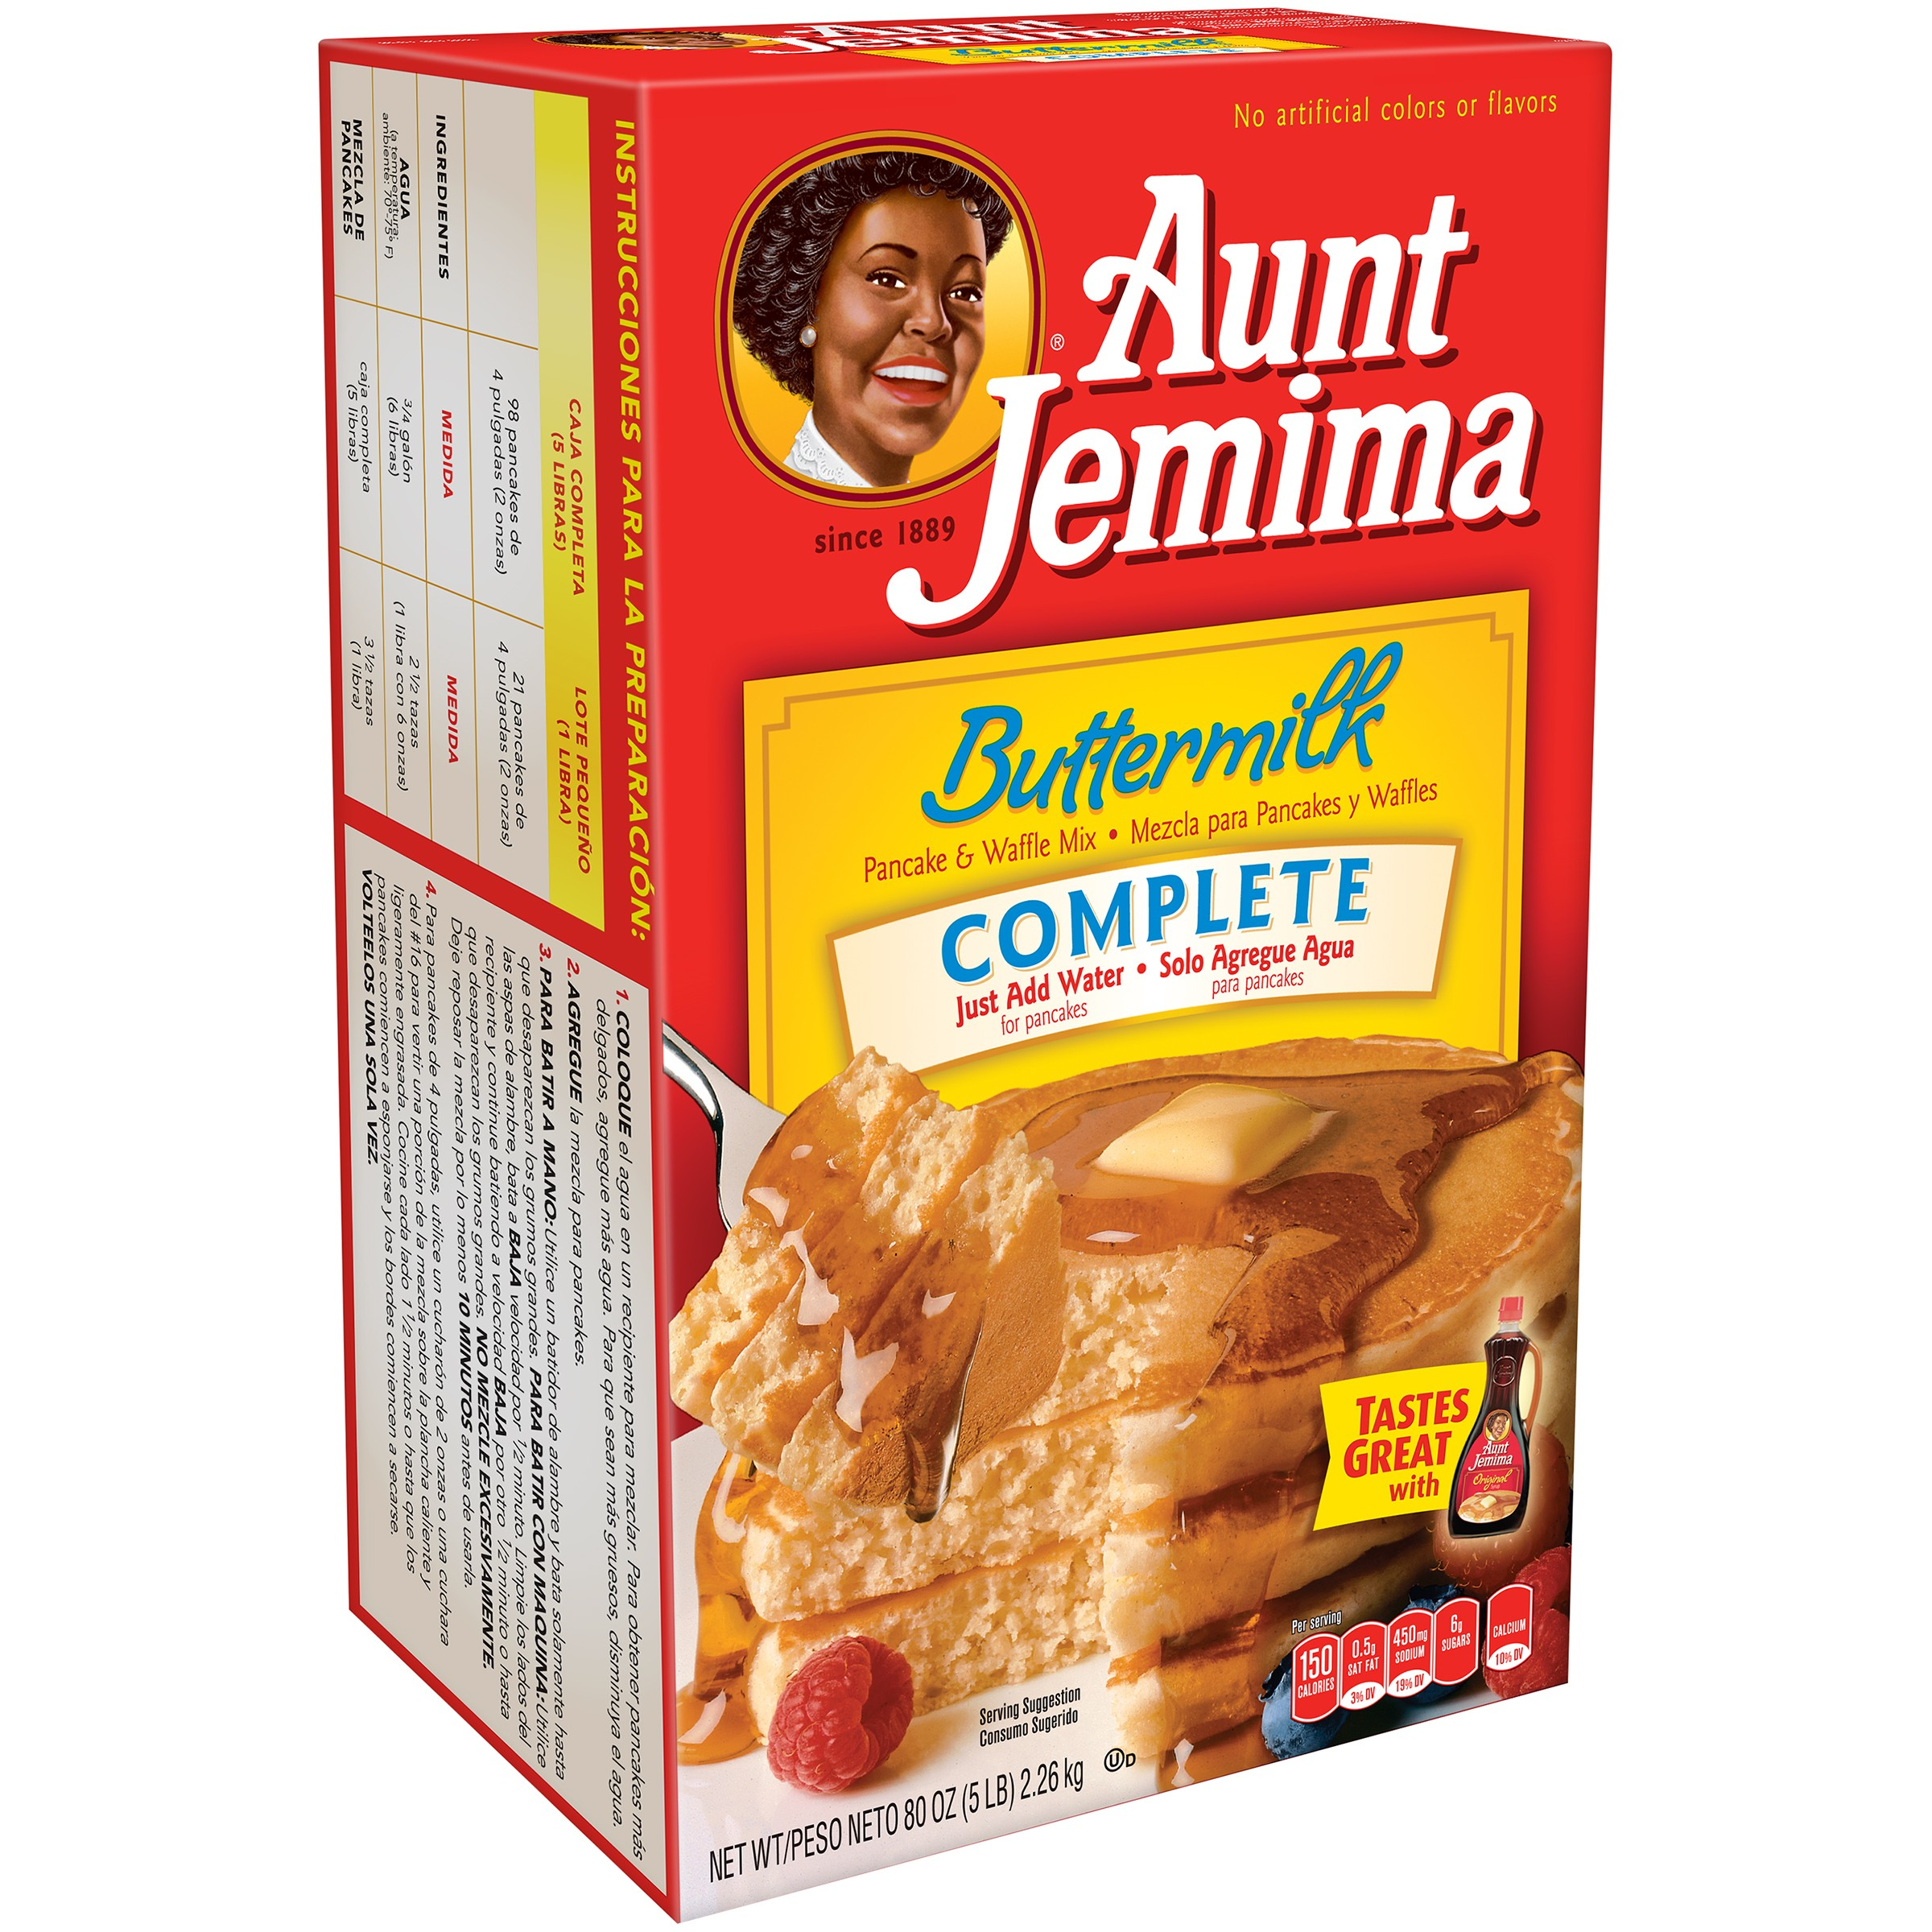 Aunt Jemima Buttermilk Complete Pancake & Waffle Mix 80 oz. Box by Generic